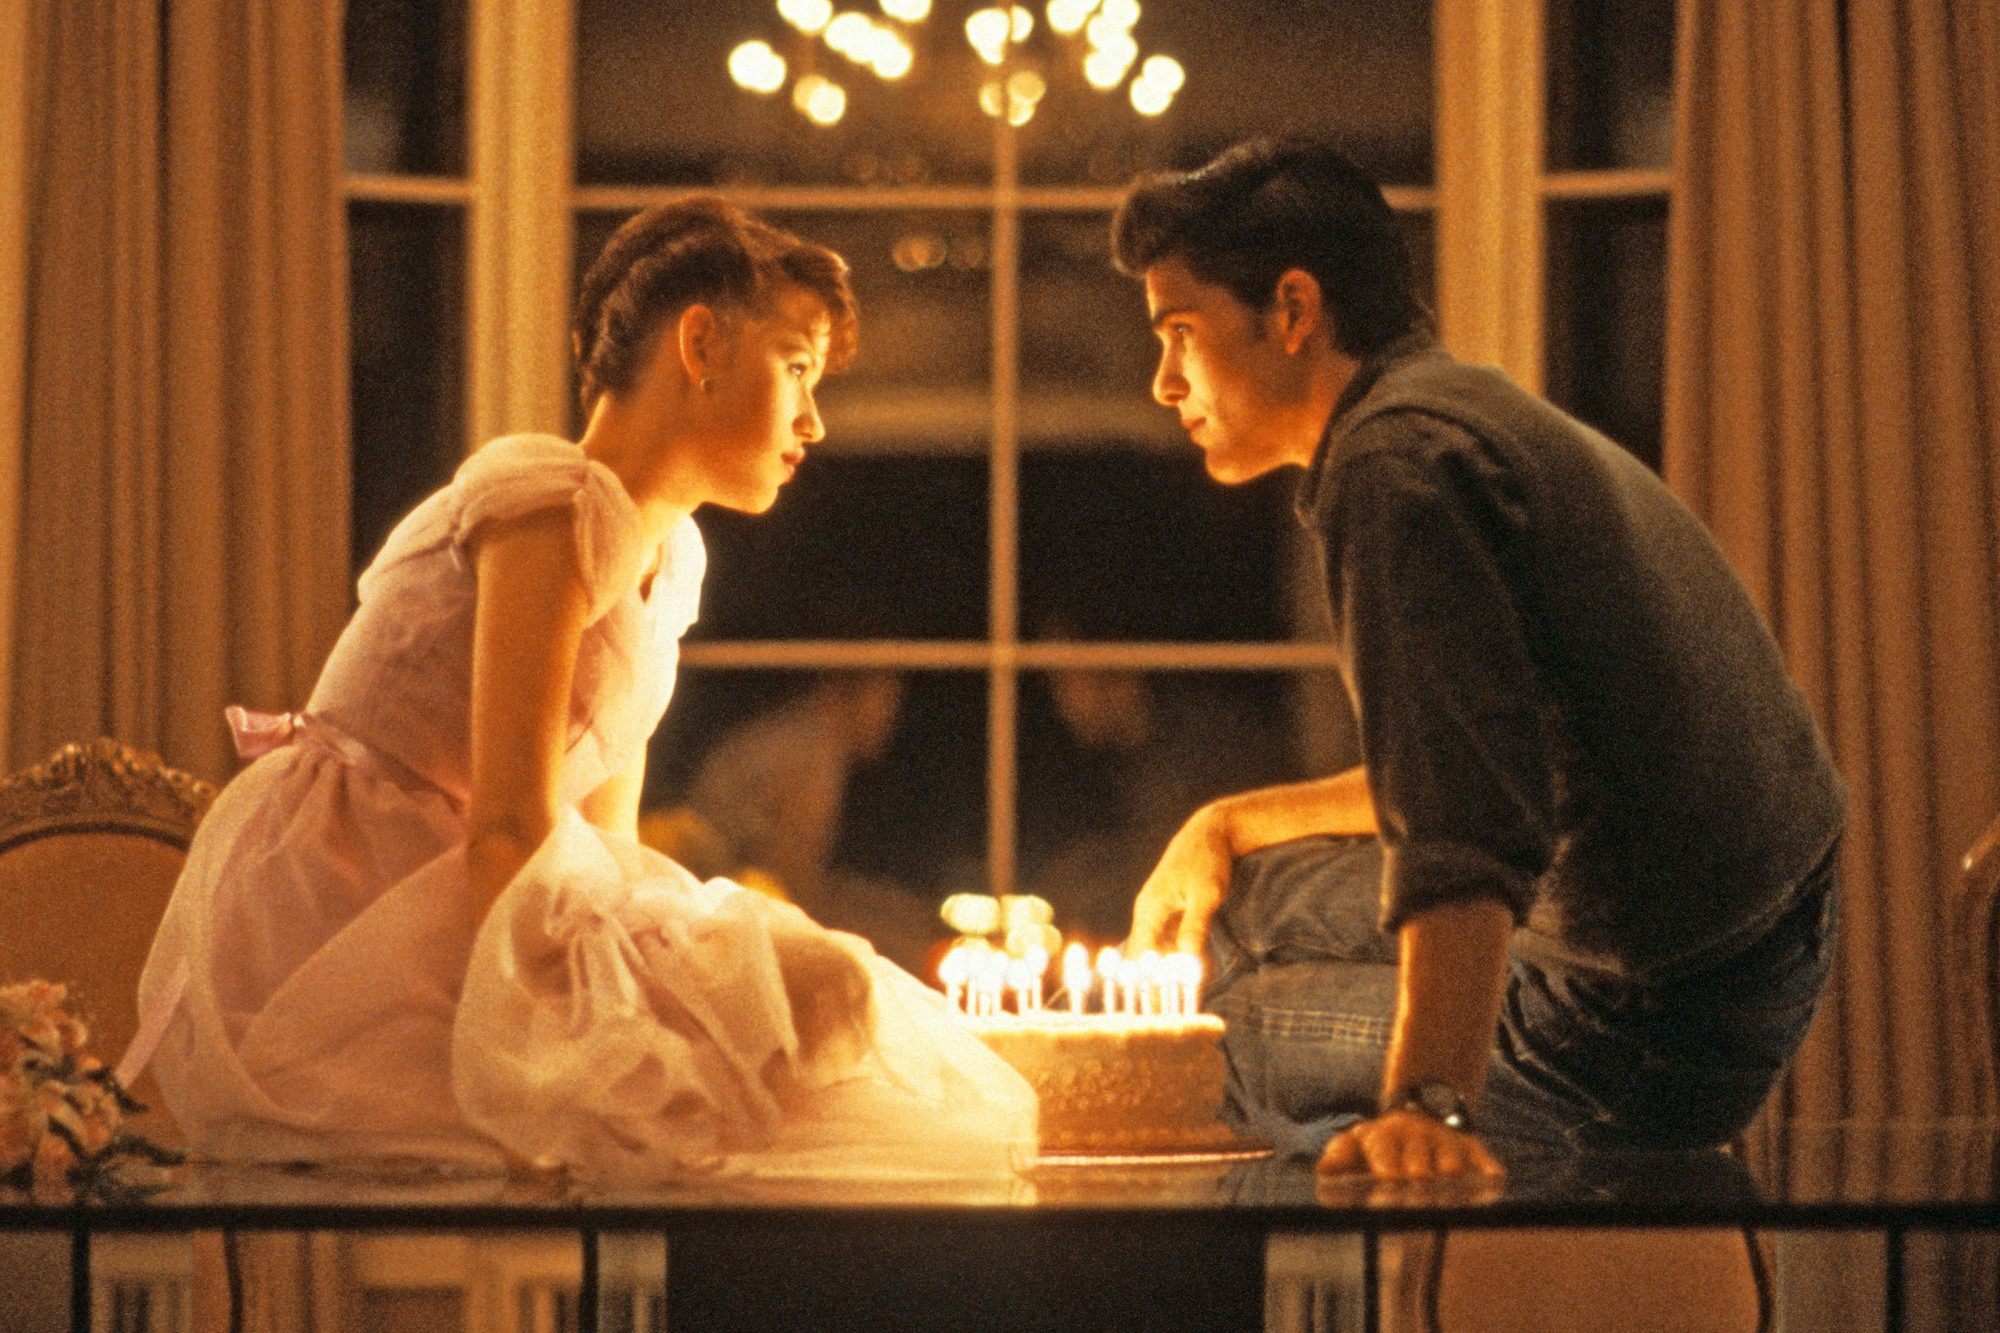 SIXTEEN CANDLES, Molly Ringwald, Michael Schoeffling, 1984. (c)Universal Pictures/ Courtesy: Everett